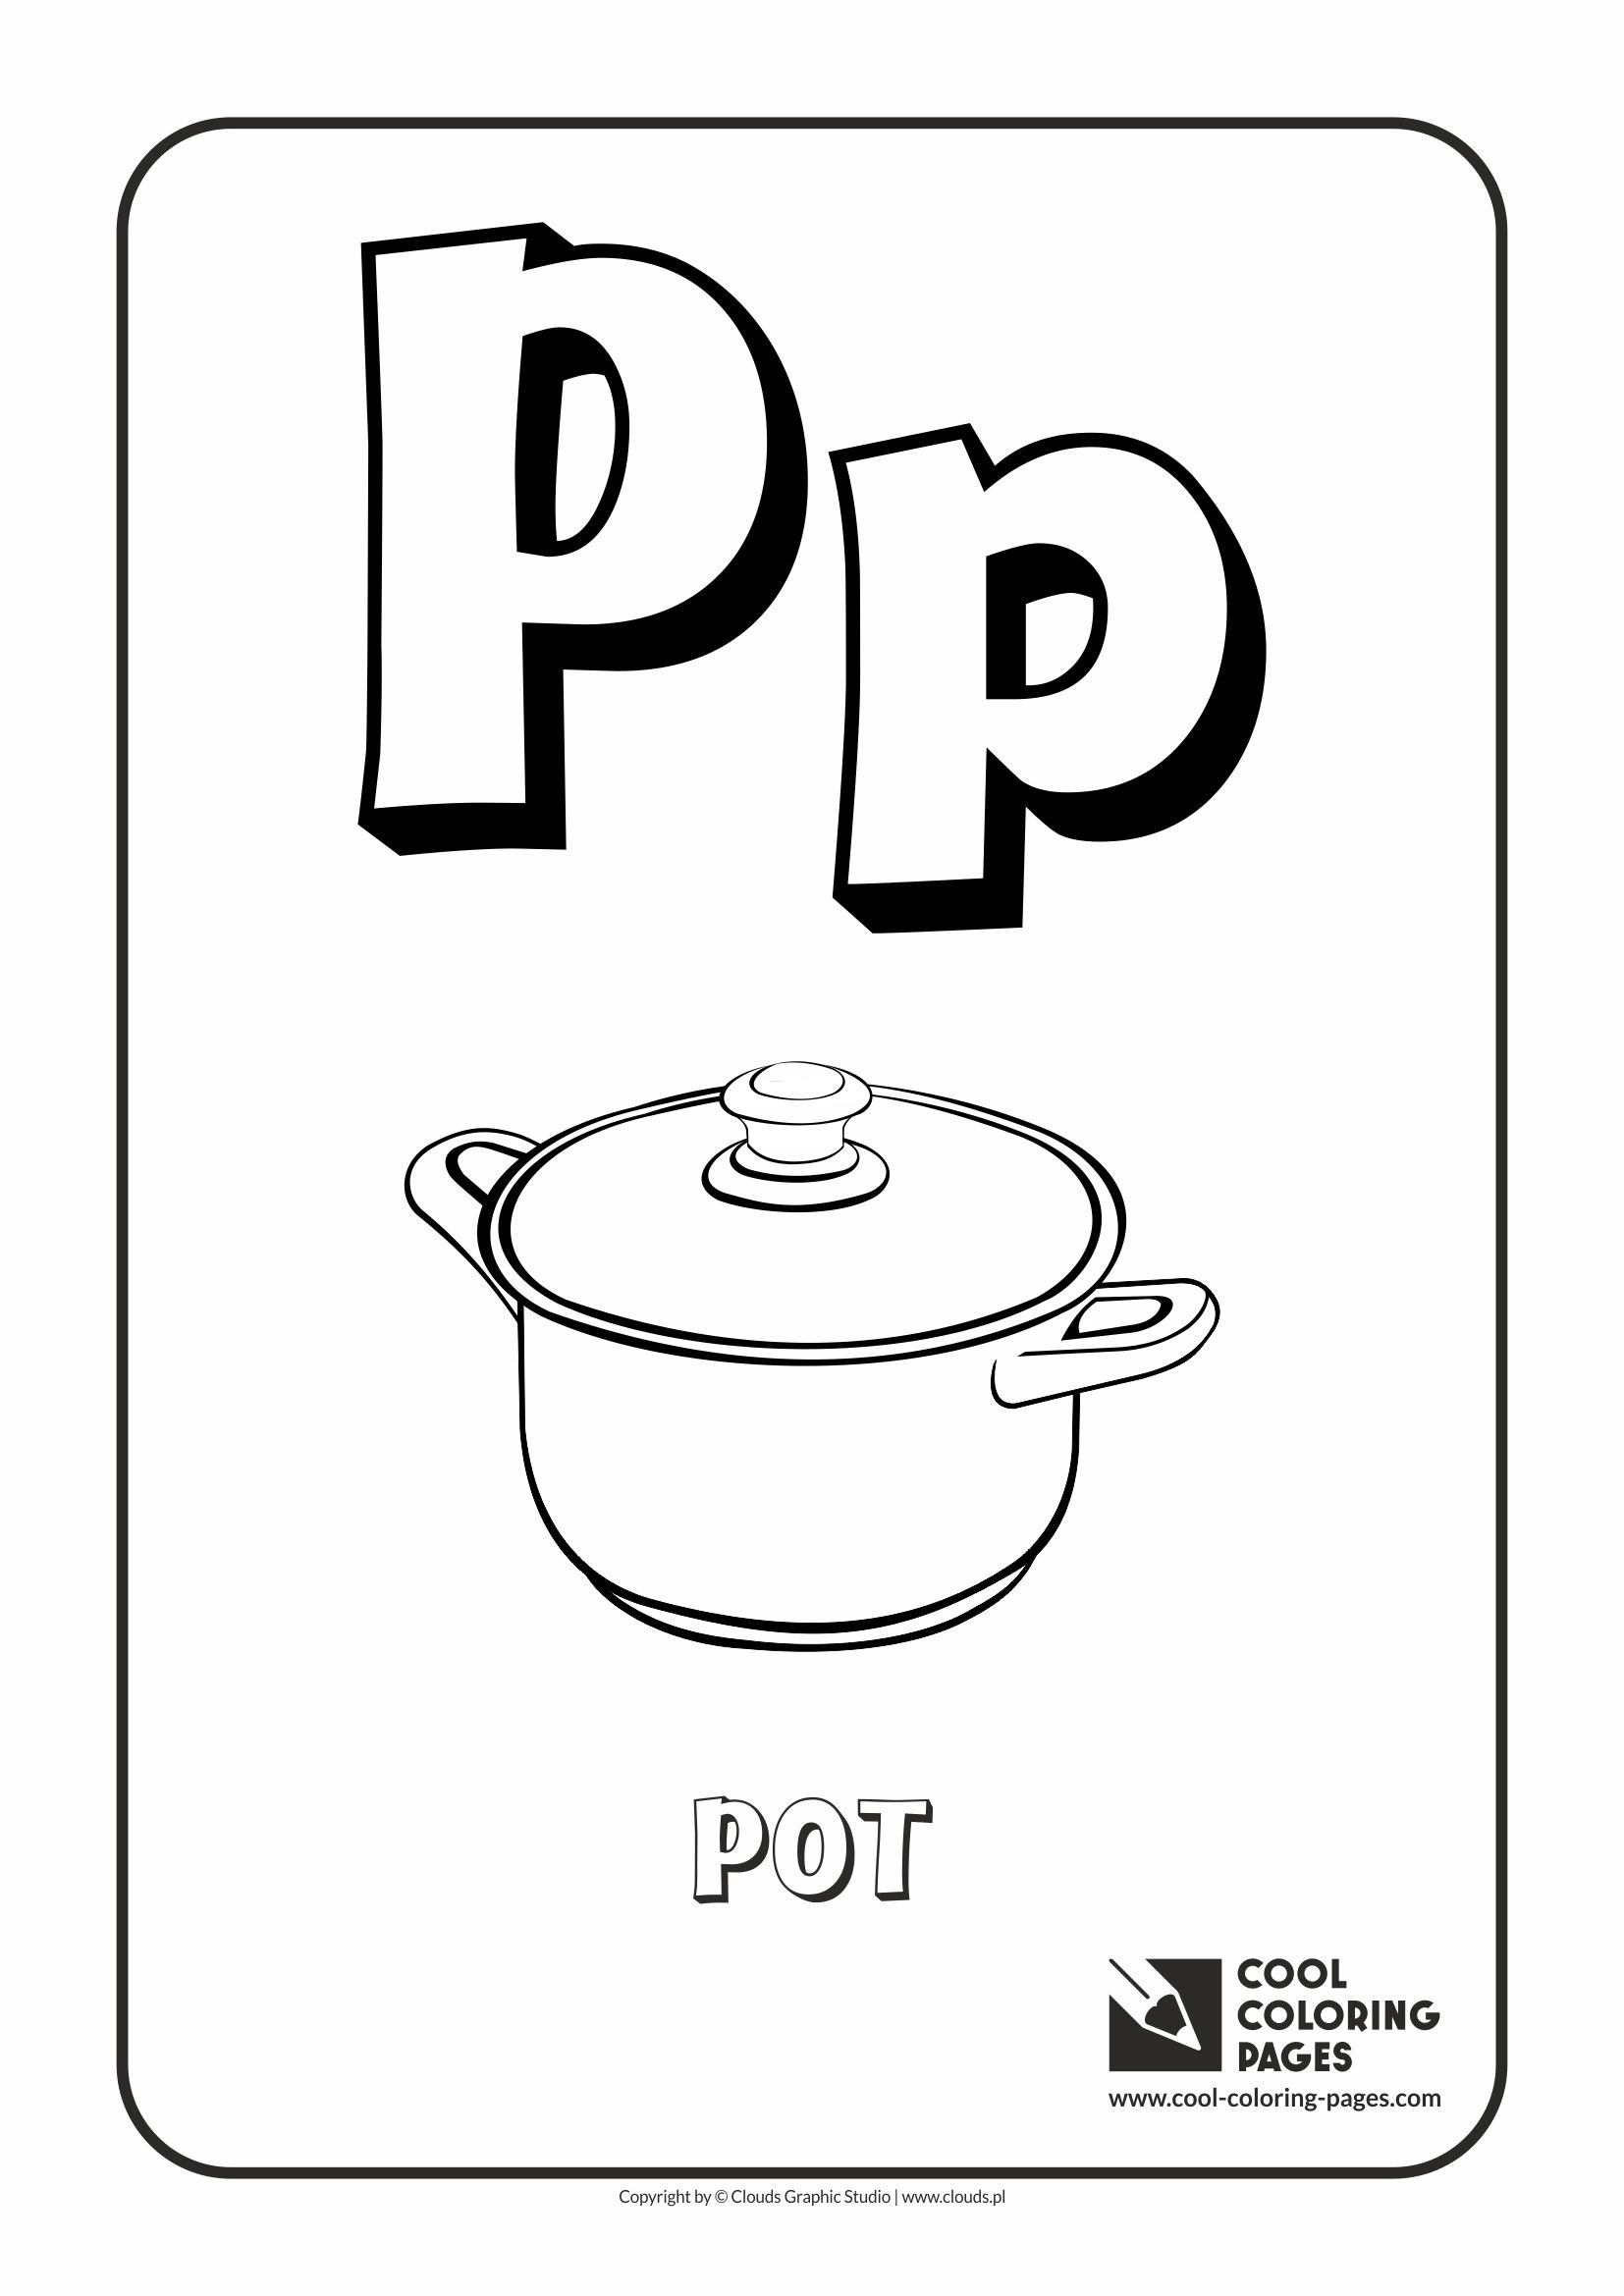 cool coloring pages alphabet letter p coloring page with letter p - Letter P Coloring Sheet